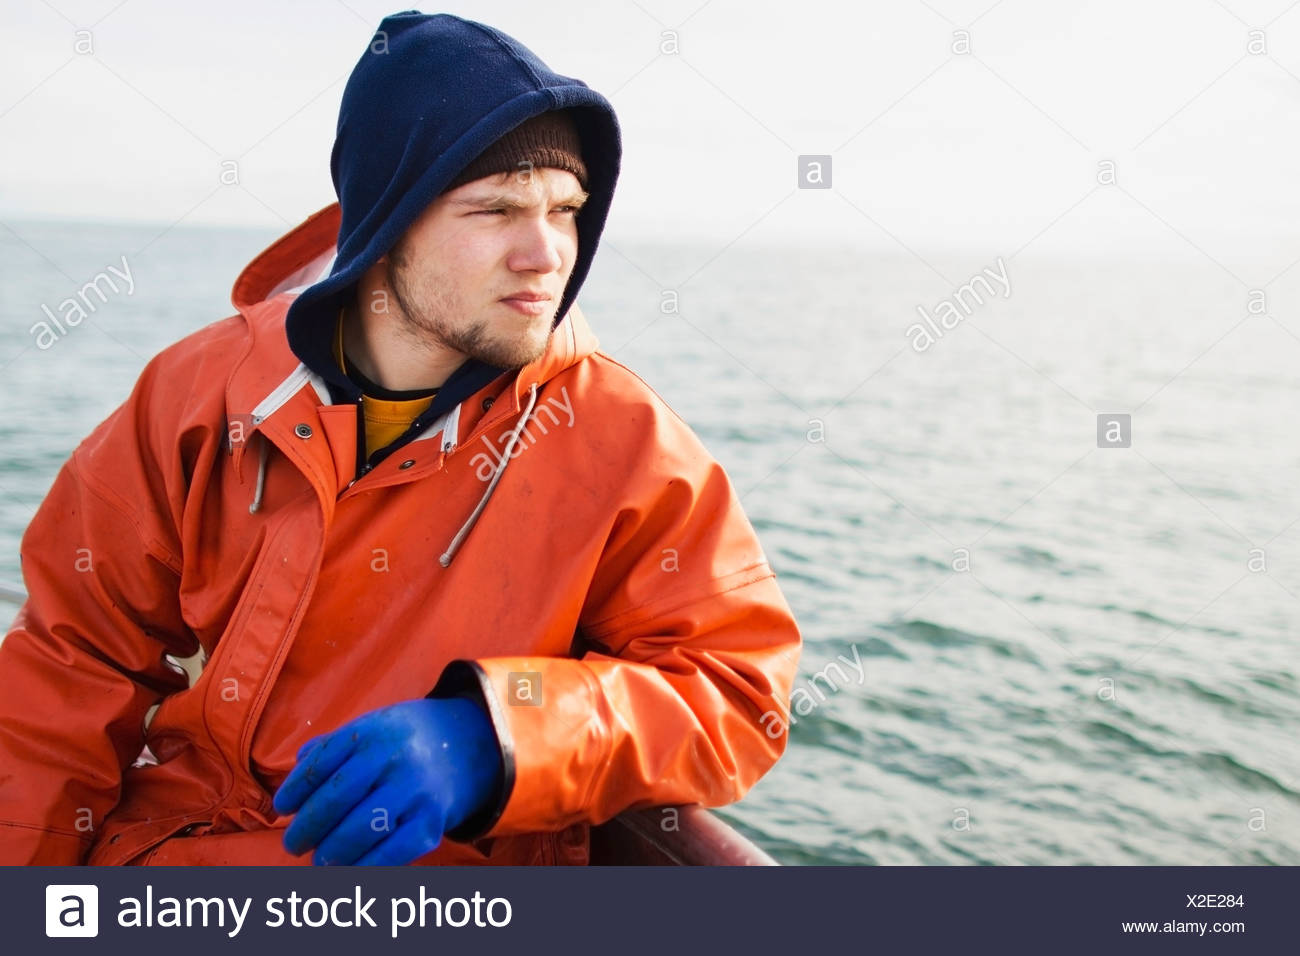 Rain Gear Clad Deckhand Takes A Break Sitting On The Rail Looking Out At The Net While Salmon Fishing On The Copper River Flats - Stock Image